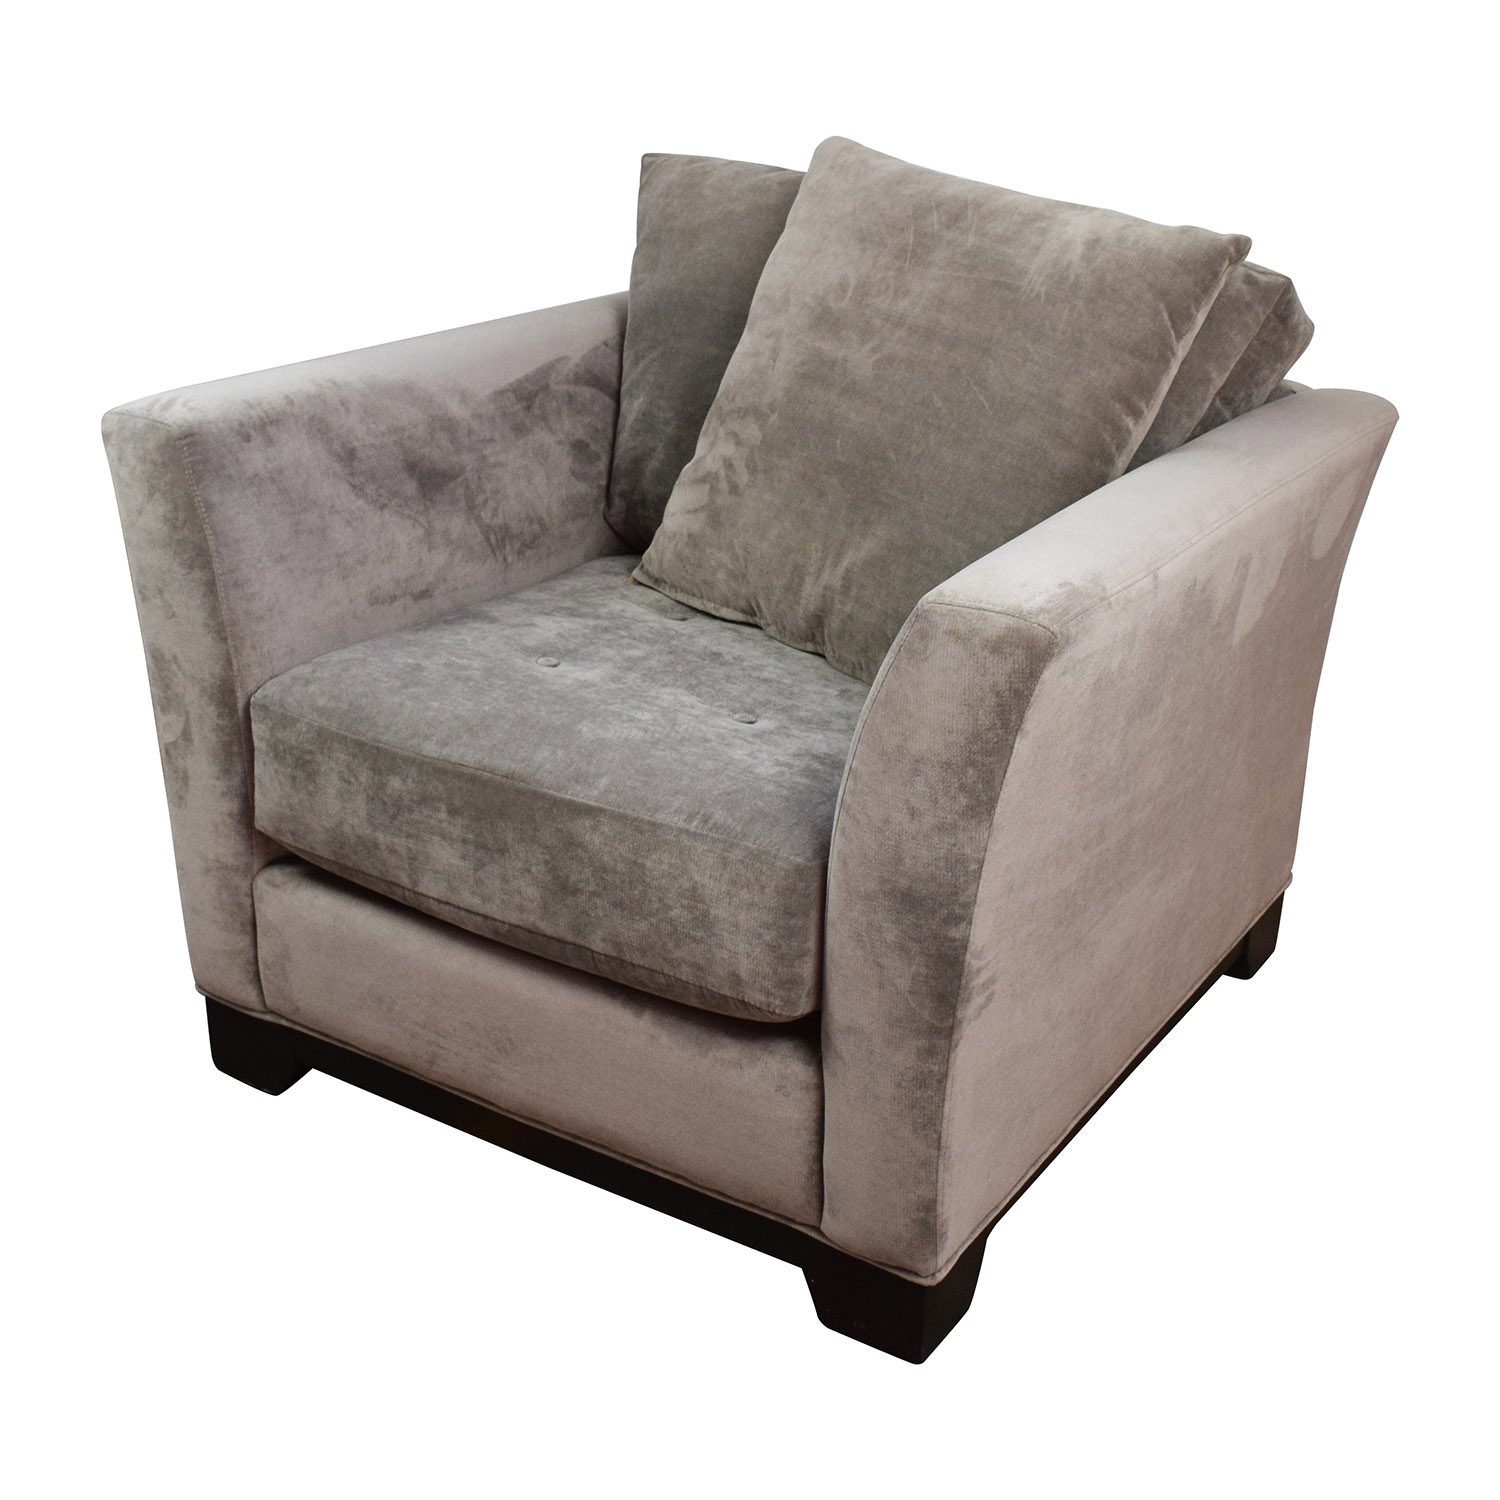 macy stool chair grey puppy dog 44 off 39s kenton accent chairs